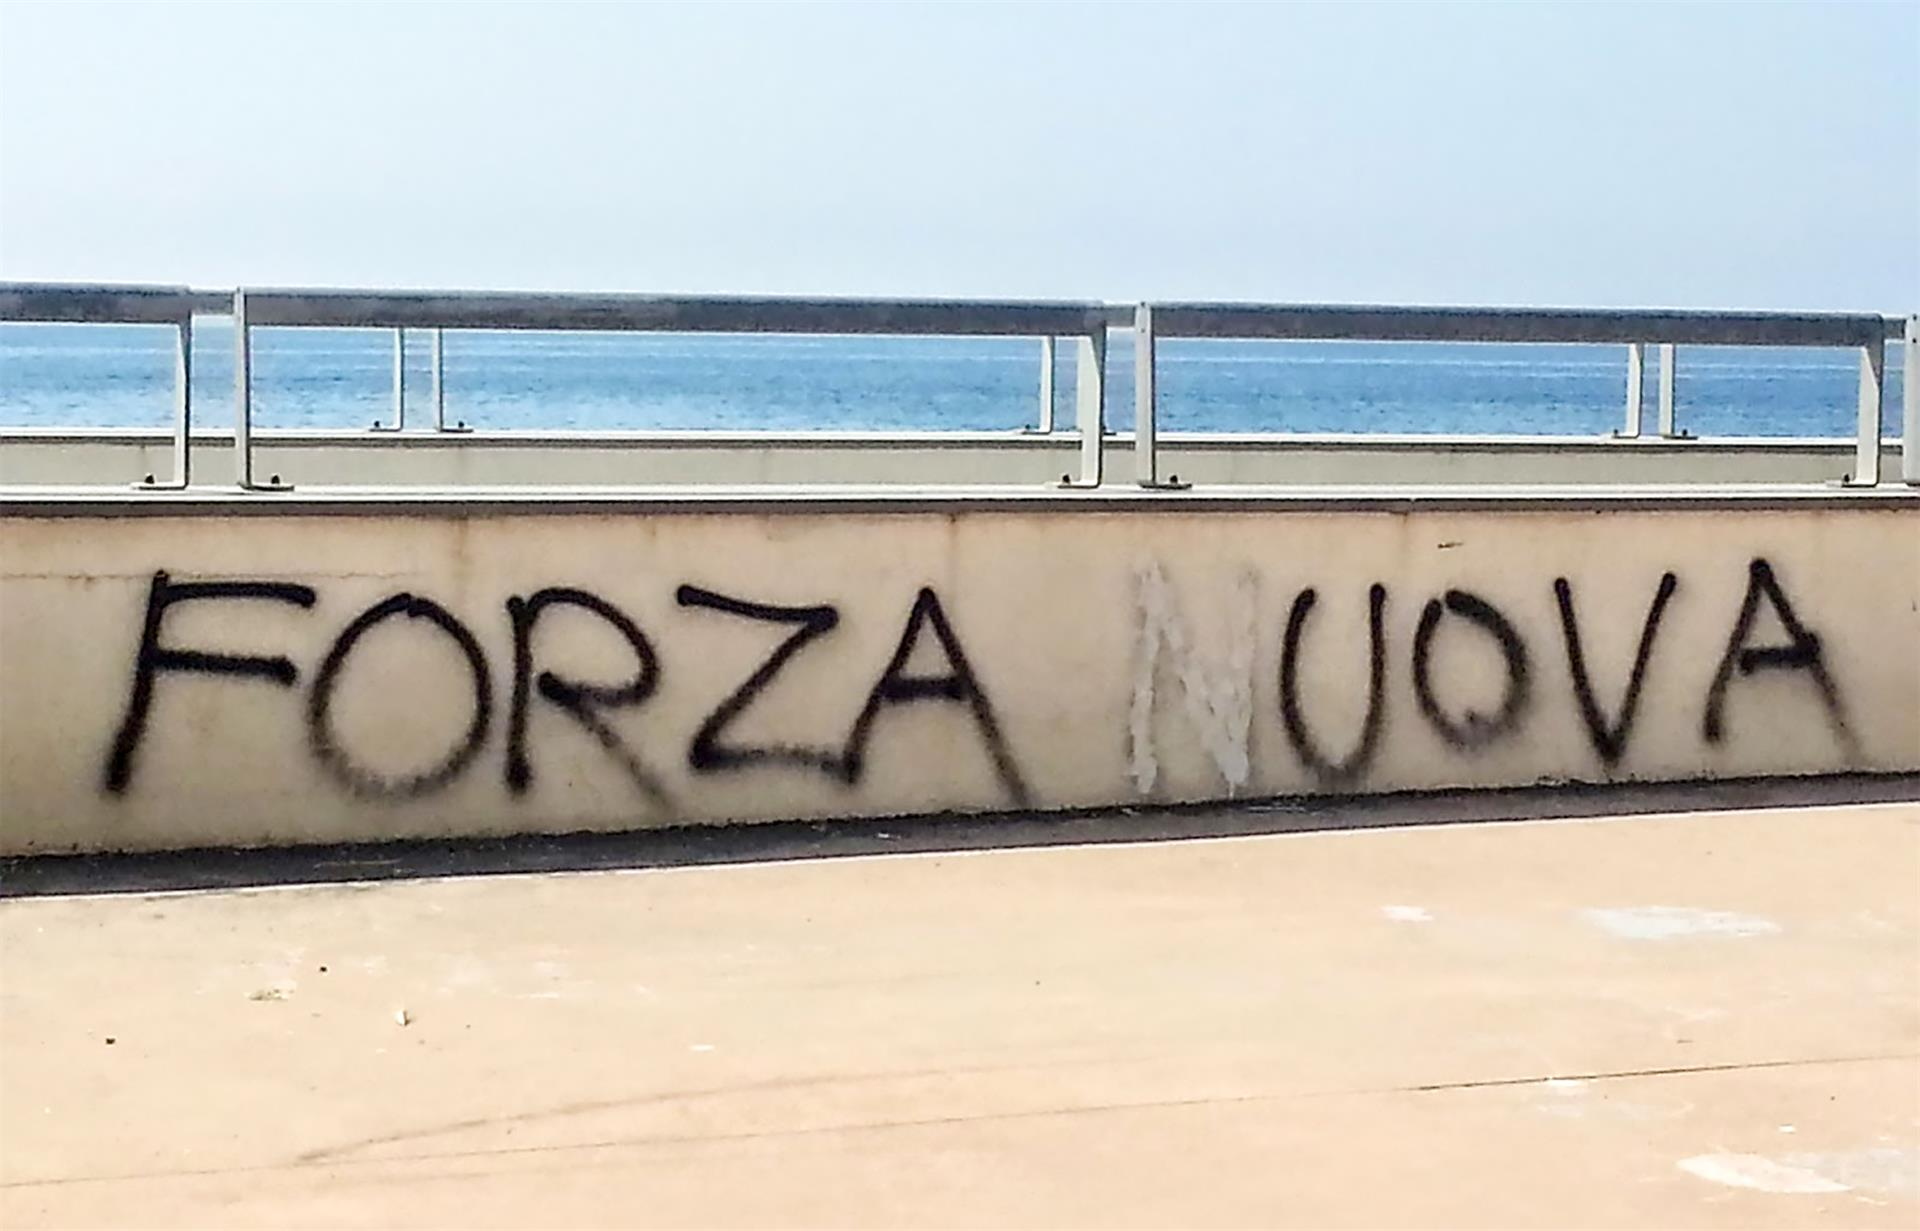 Forza uova, Alterazioni Video, Voxel 2019